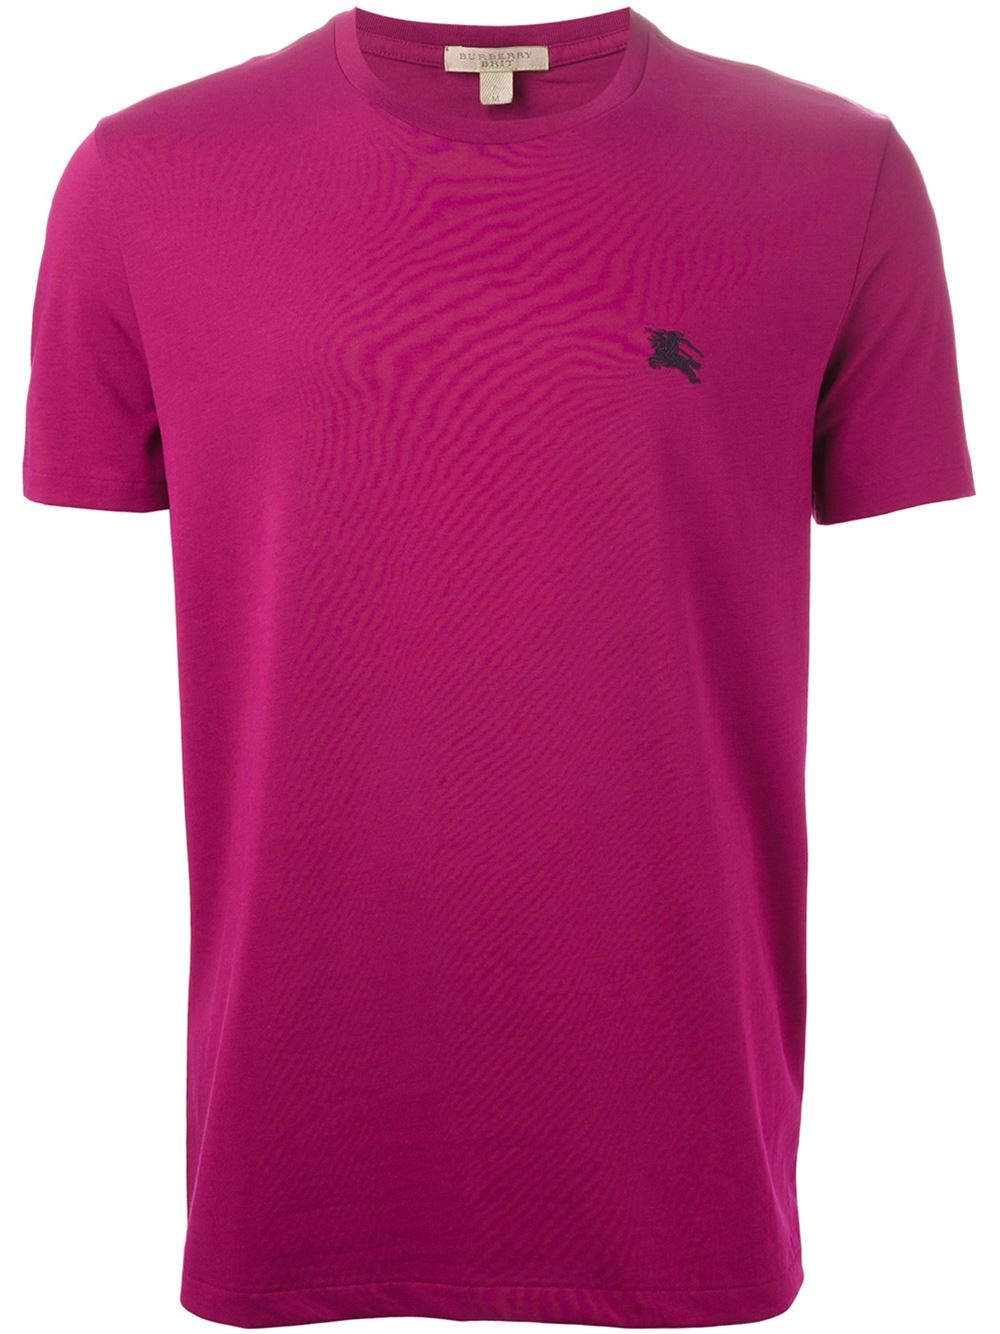 Lyst burberry brit embroidered logo t shirt in pink for men for Lands end logo shirts